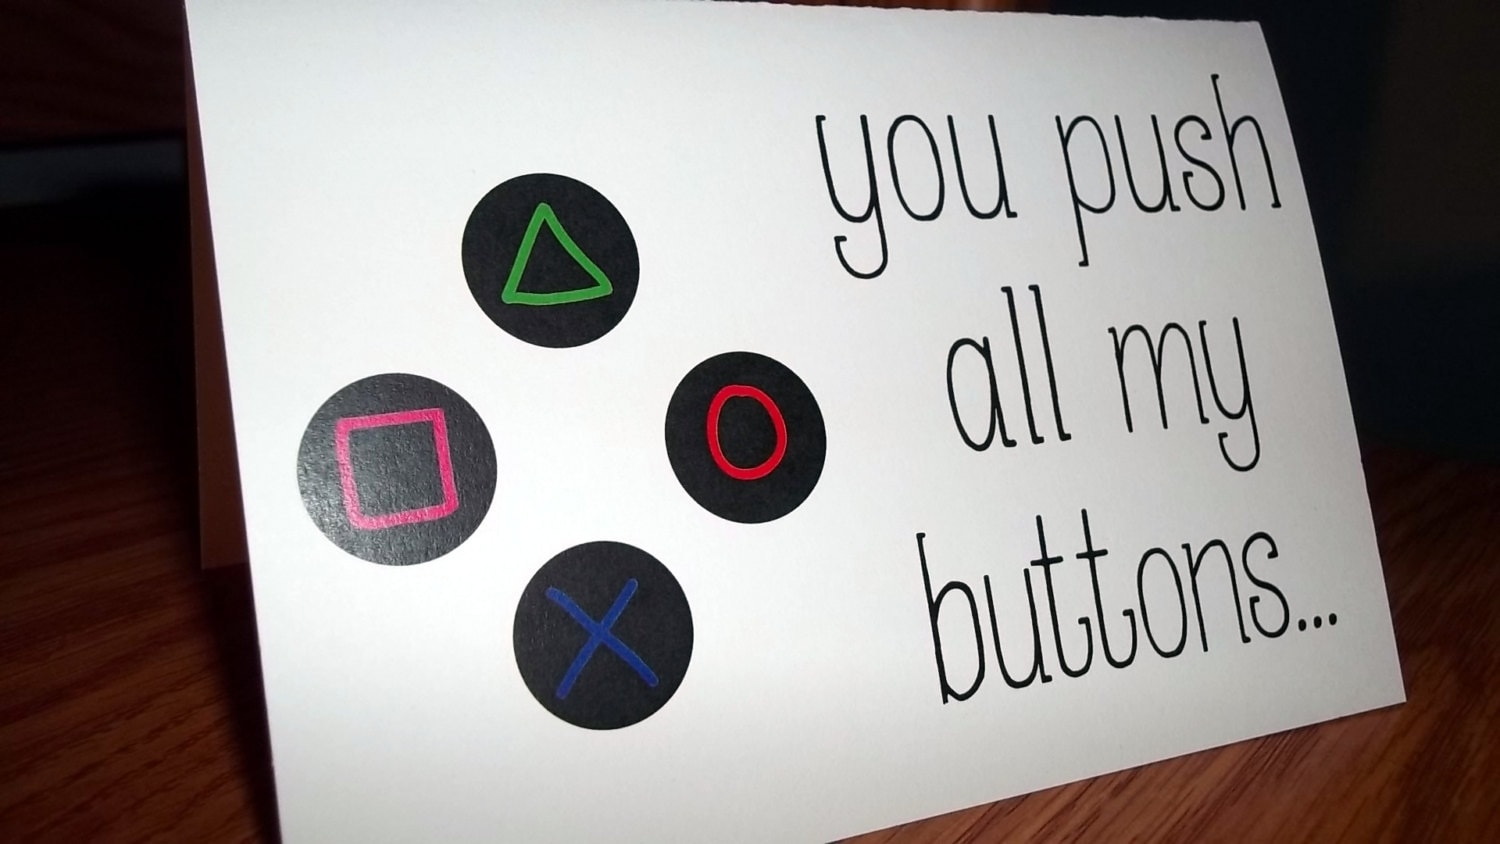 Funny anniversary card you push all my buttons